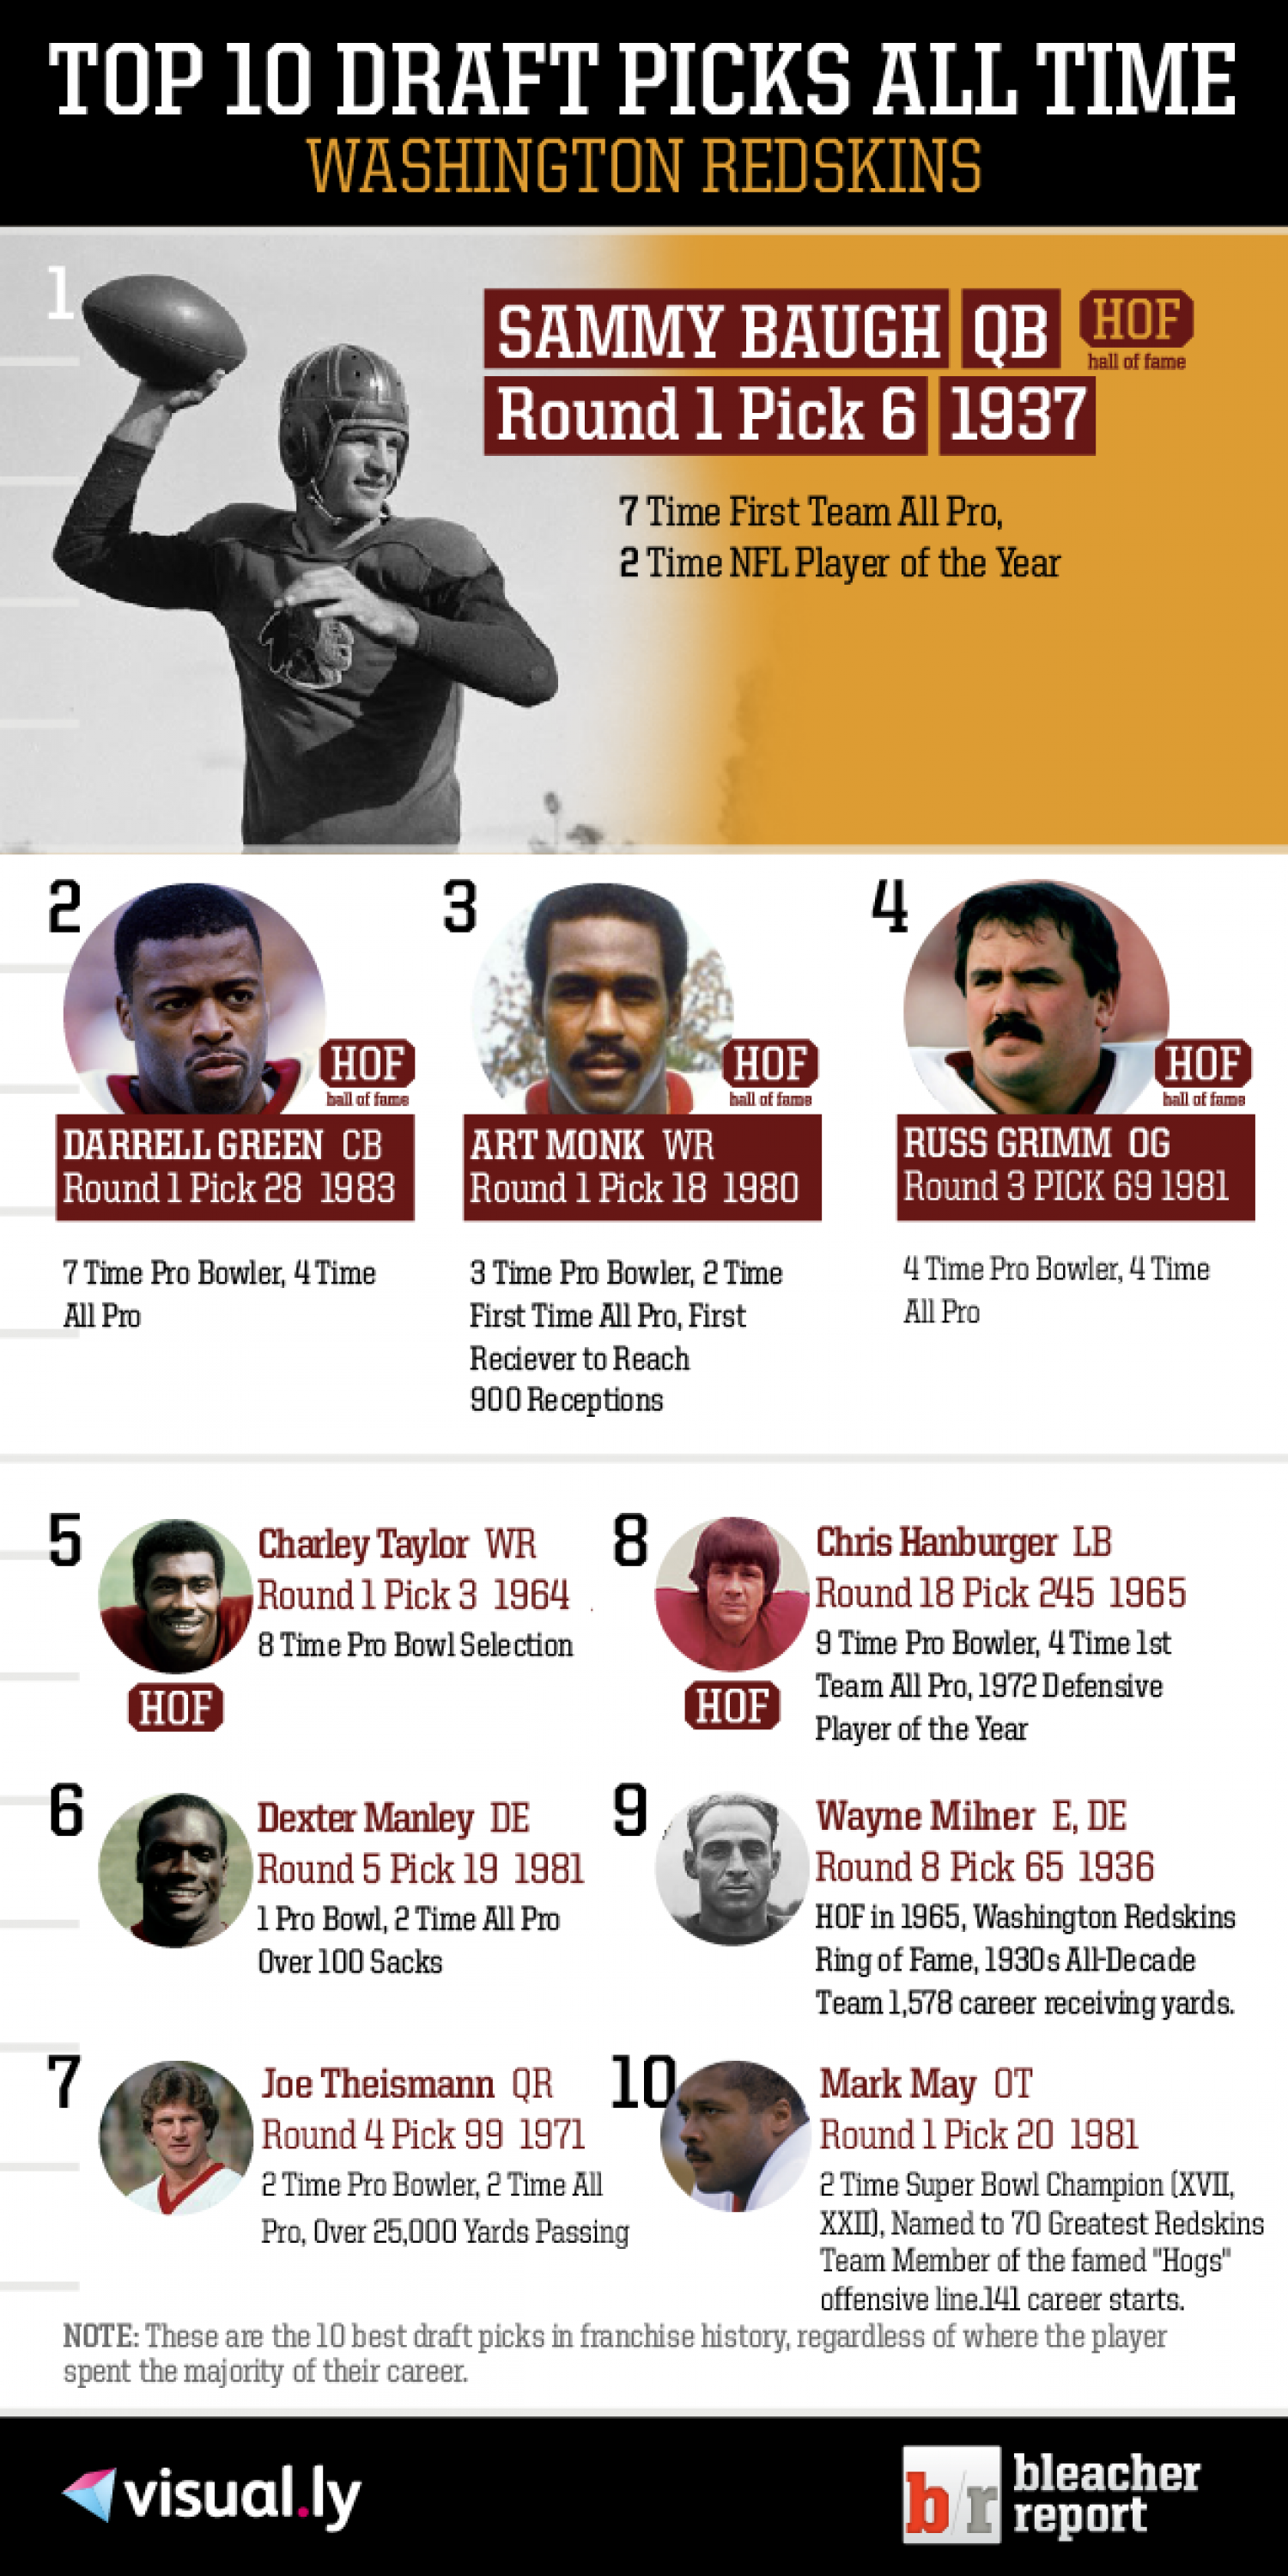 Top 10 Draft Picks of All Time: Washington Redskins Infographic